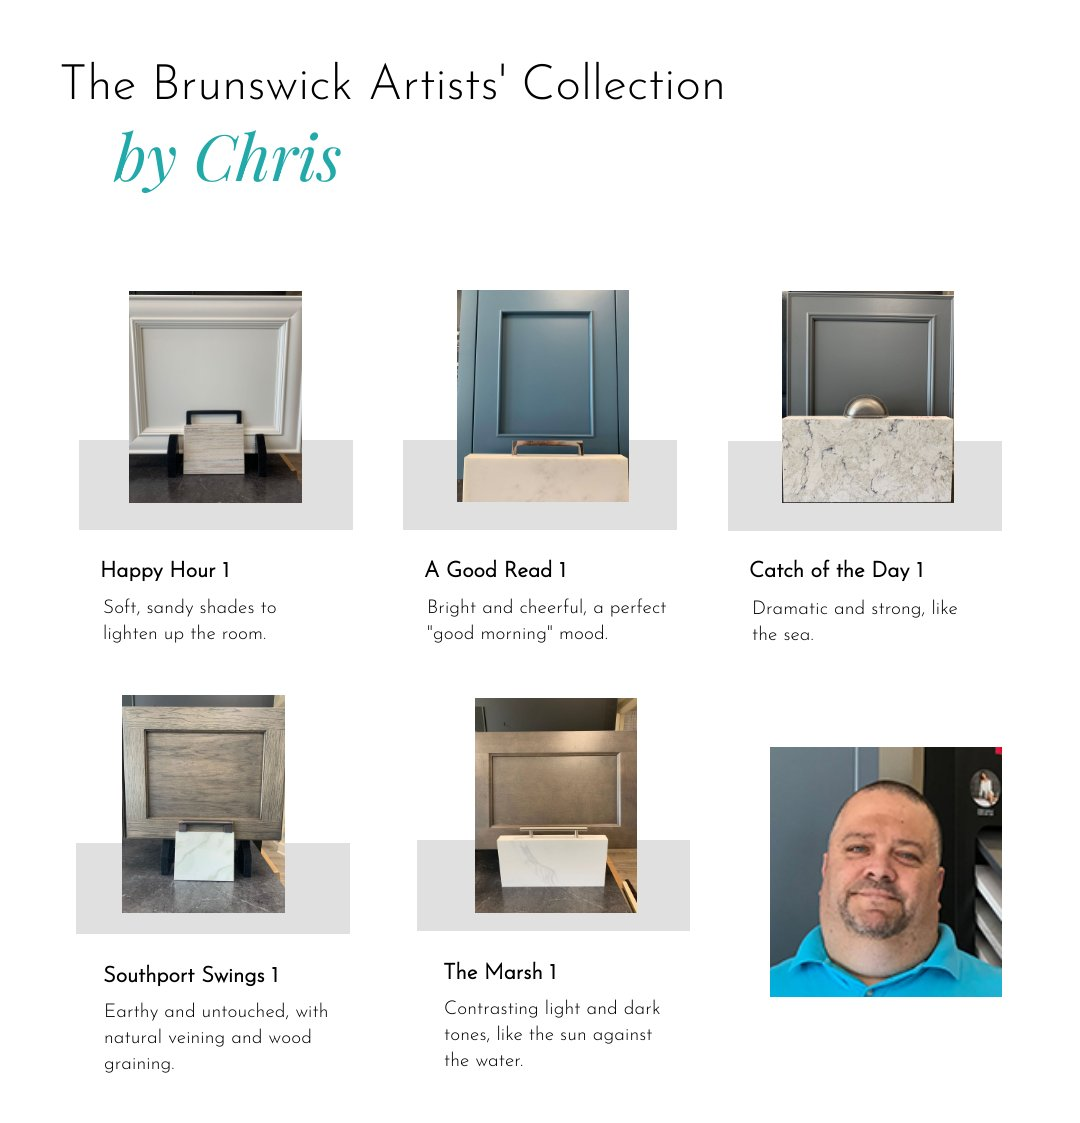 The Brunswick Artists Collection by Brunswick Cabinets and Countertops' Chris Gibson